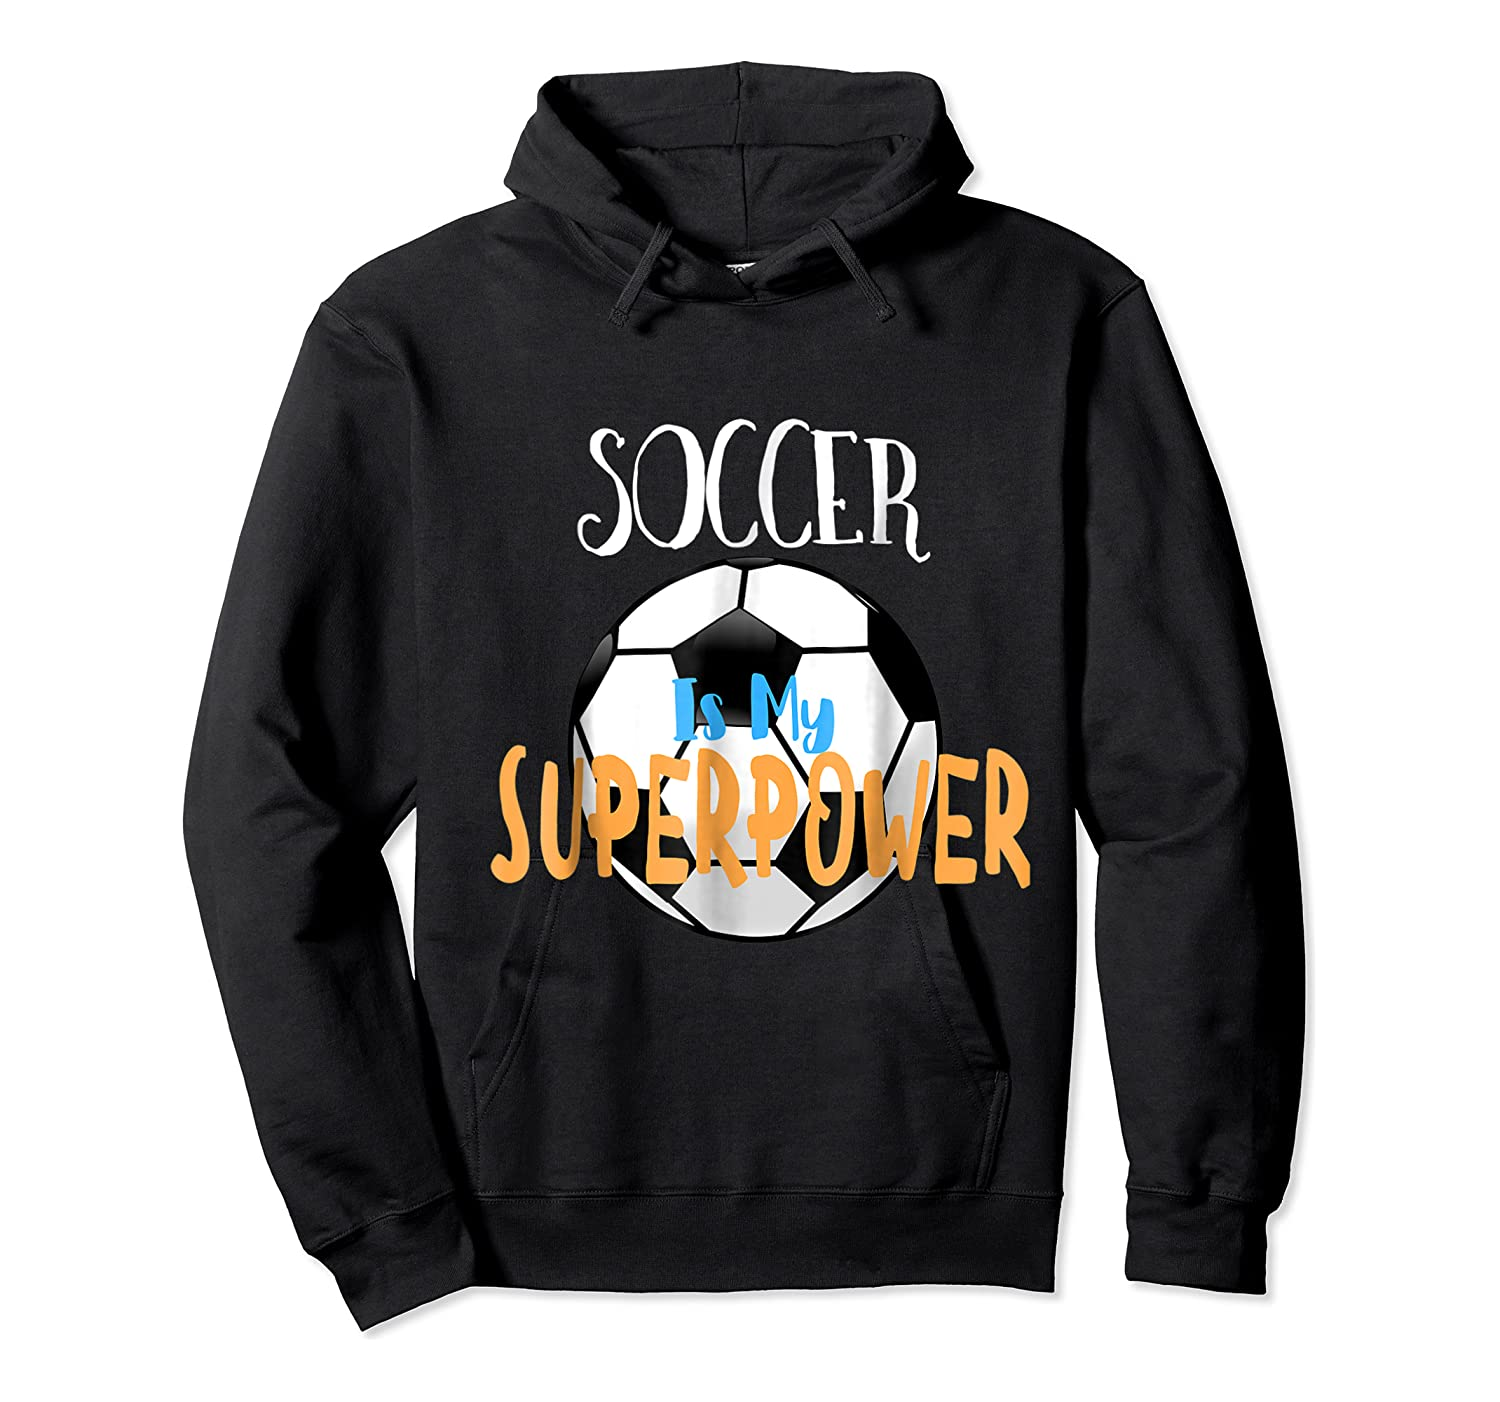 Soccer Is My Superpower T-shirt Unisex Pullover Hoodie